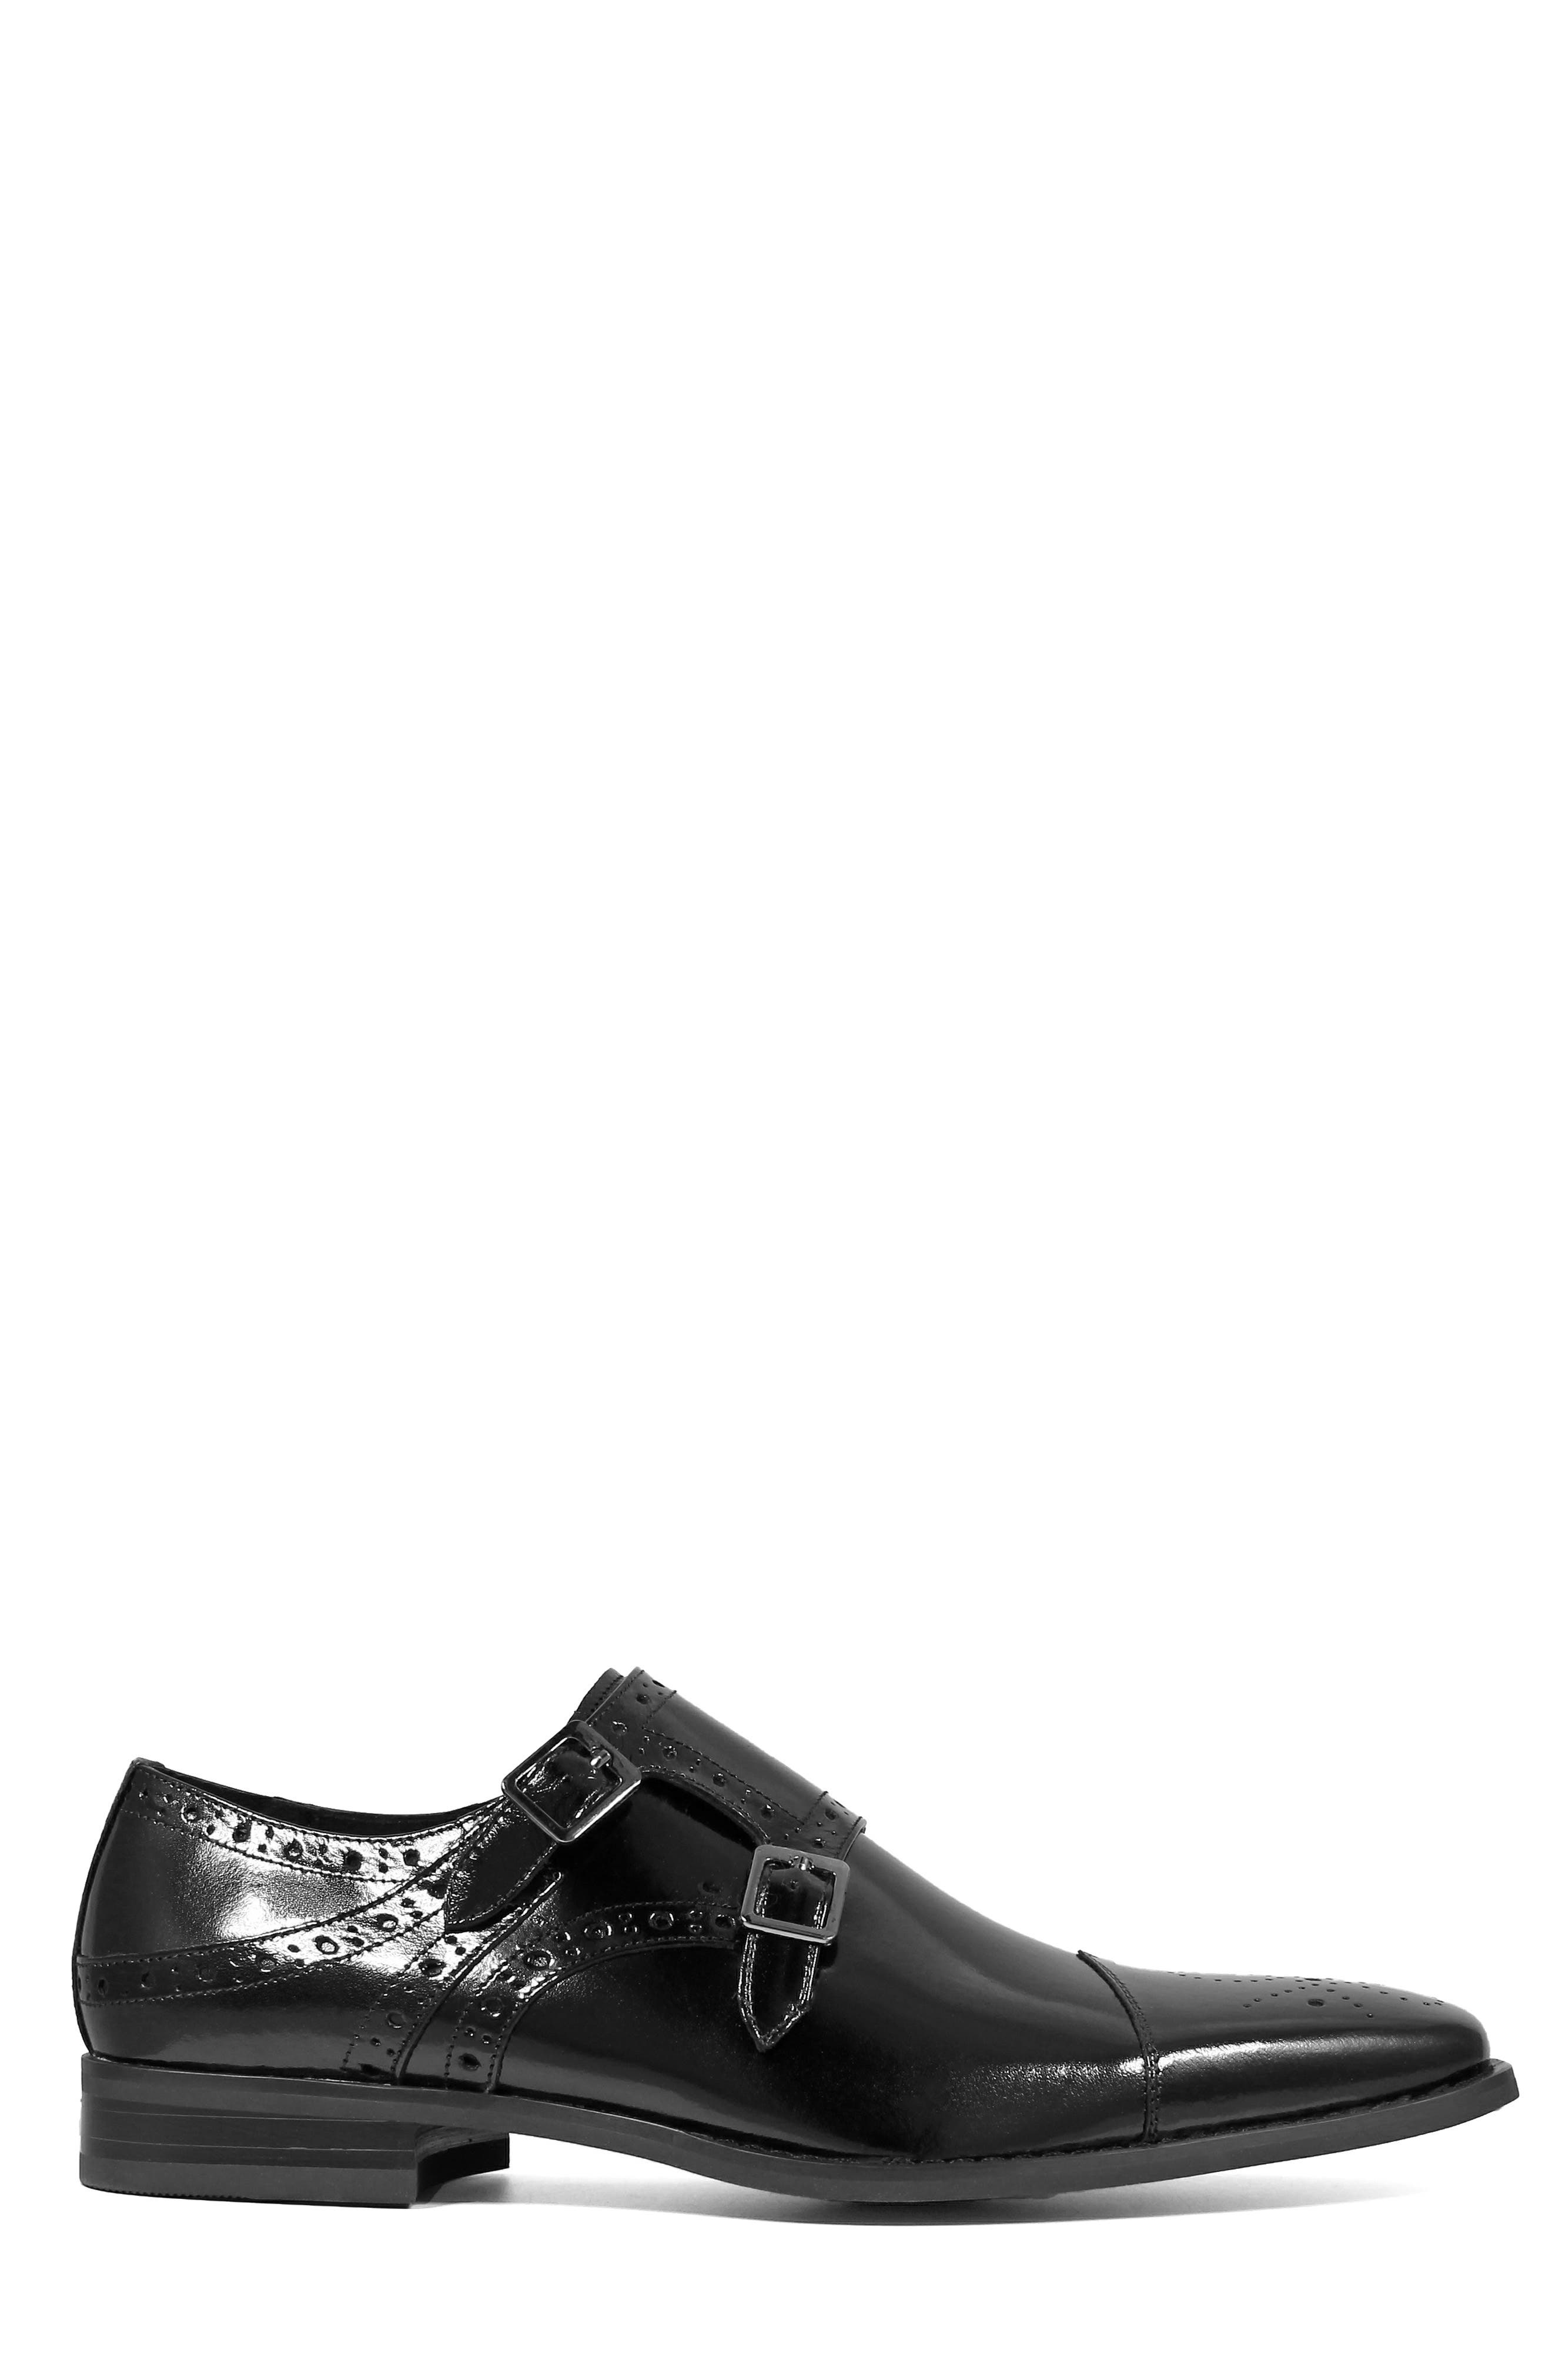 STACY ADAMS, Tayton Cap Toe Double Strap Monk Shoe, Alternate thumbnail 3, color, BLACK LEATHER